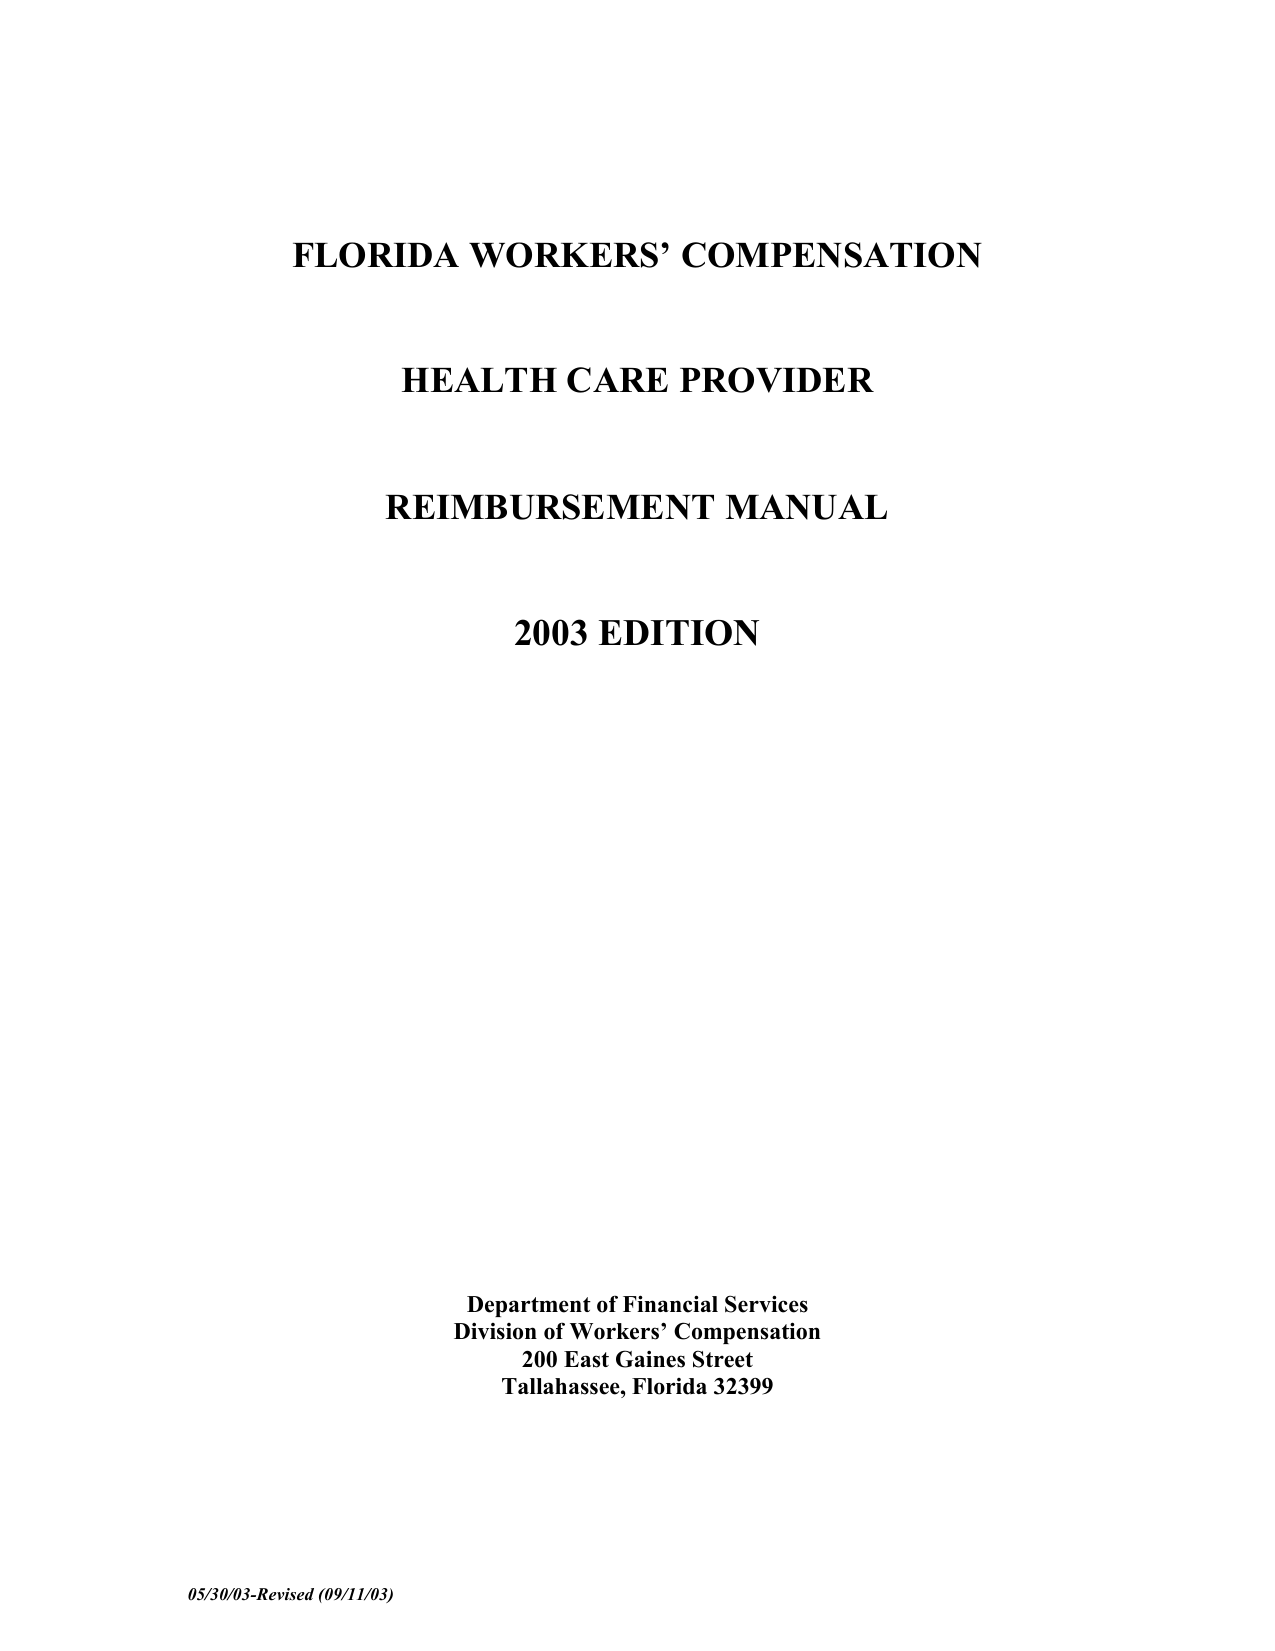 2003 EDITION FLORIDA WORKERS' COMPENSATION HEALTH CARE PROVIDER